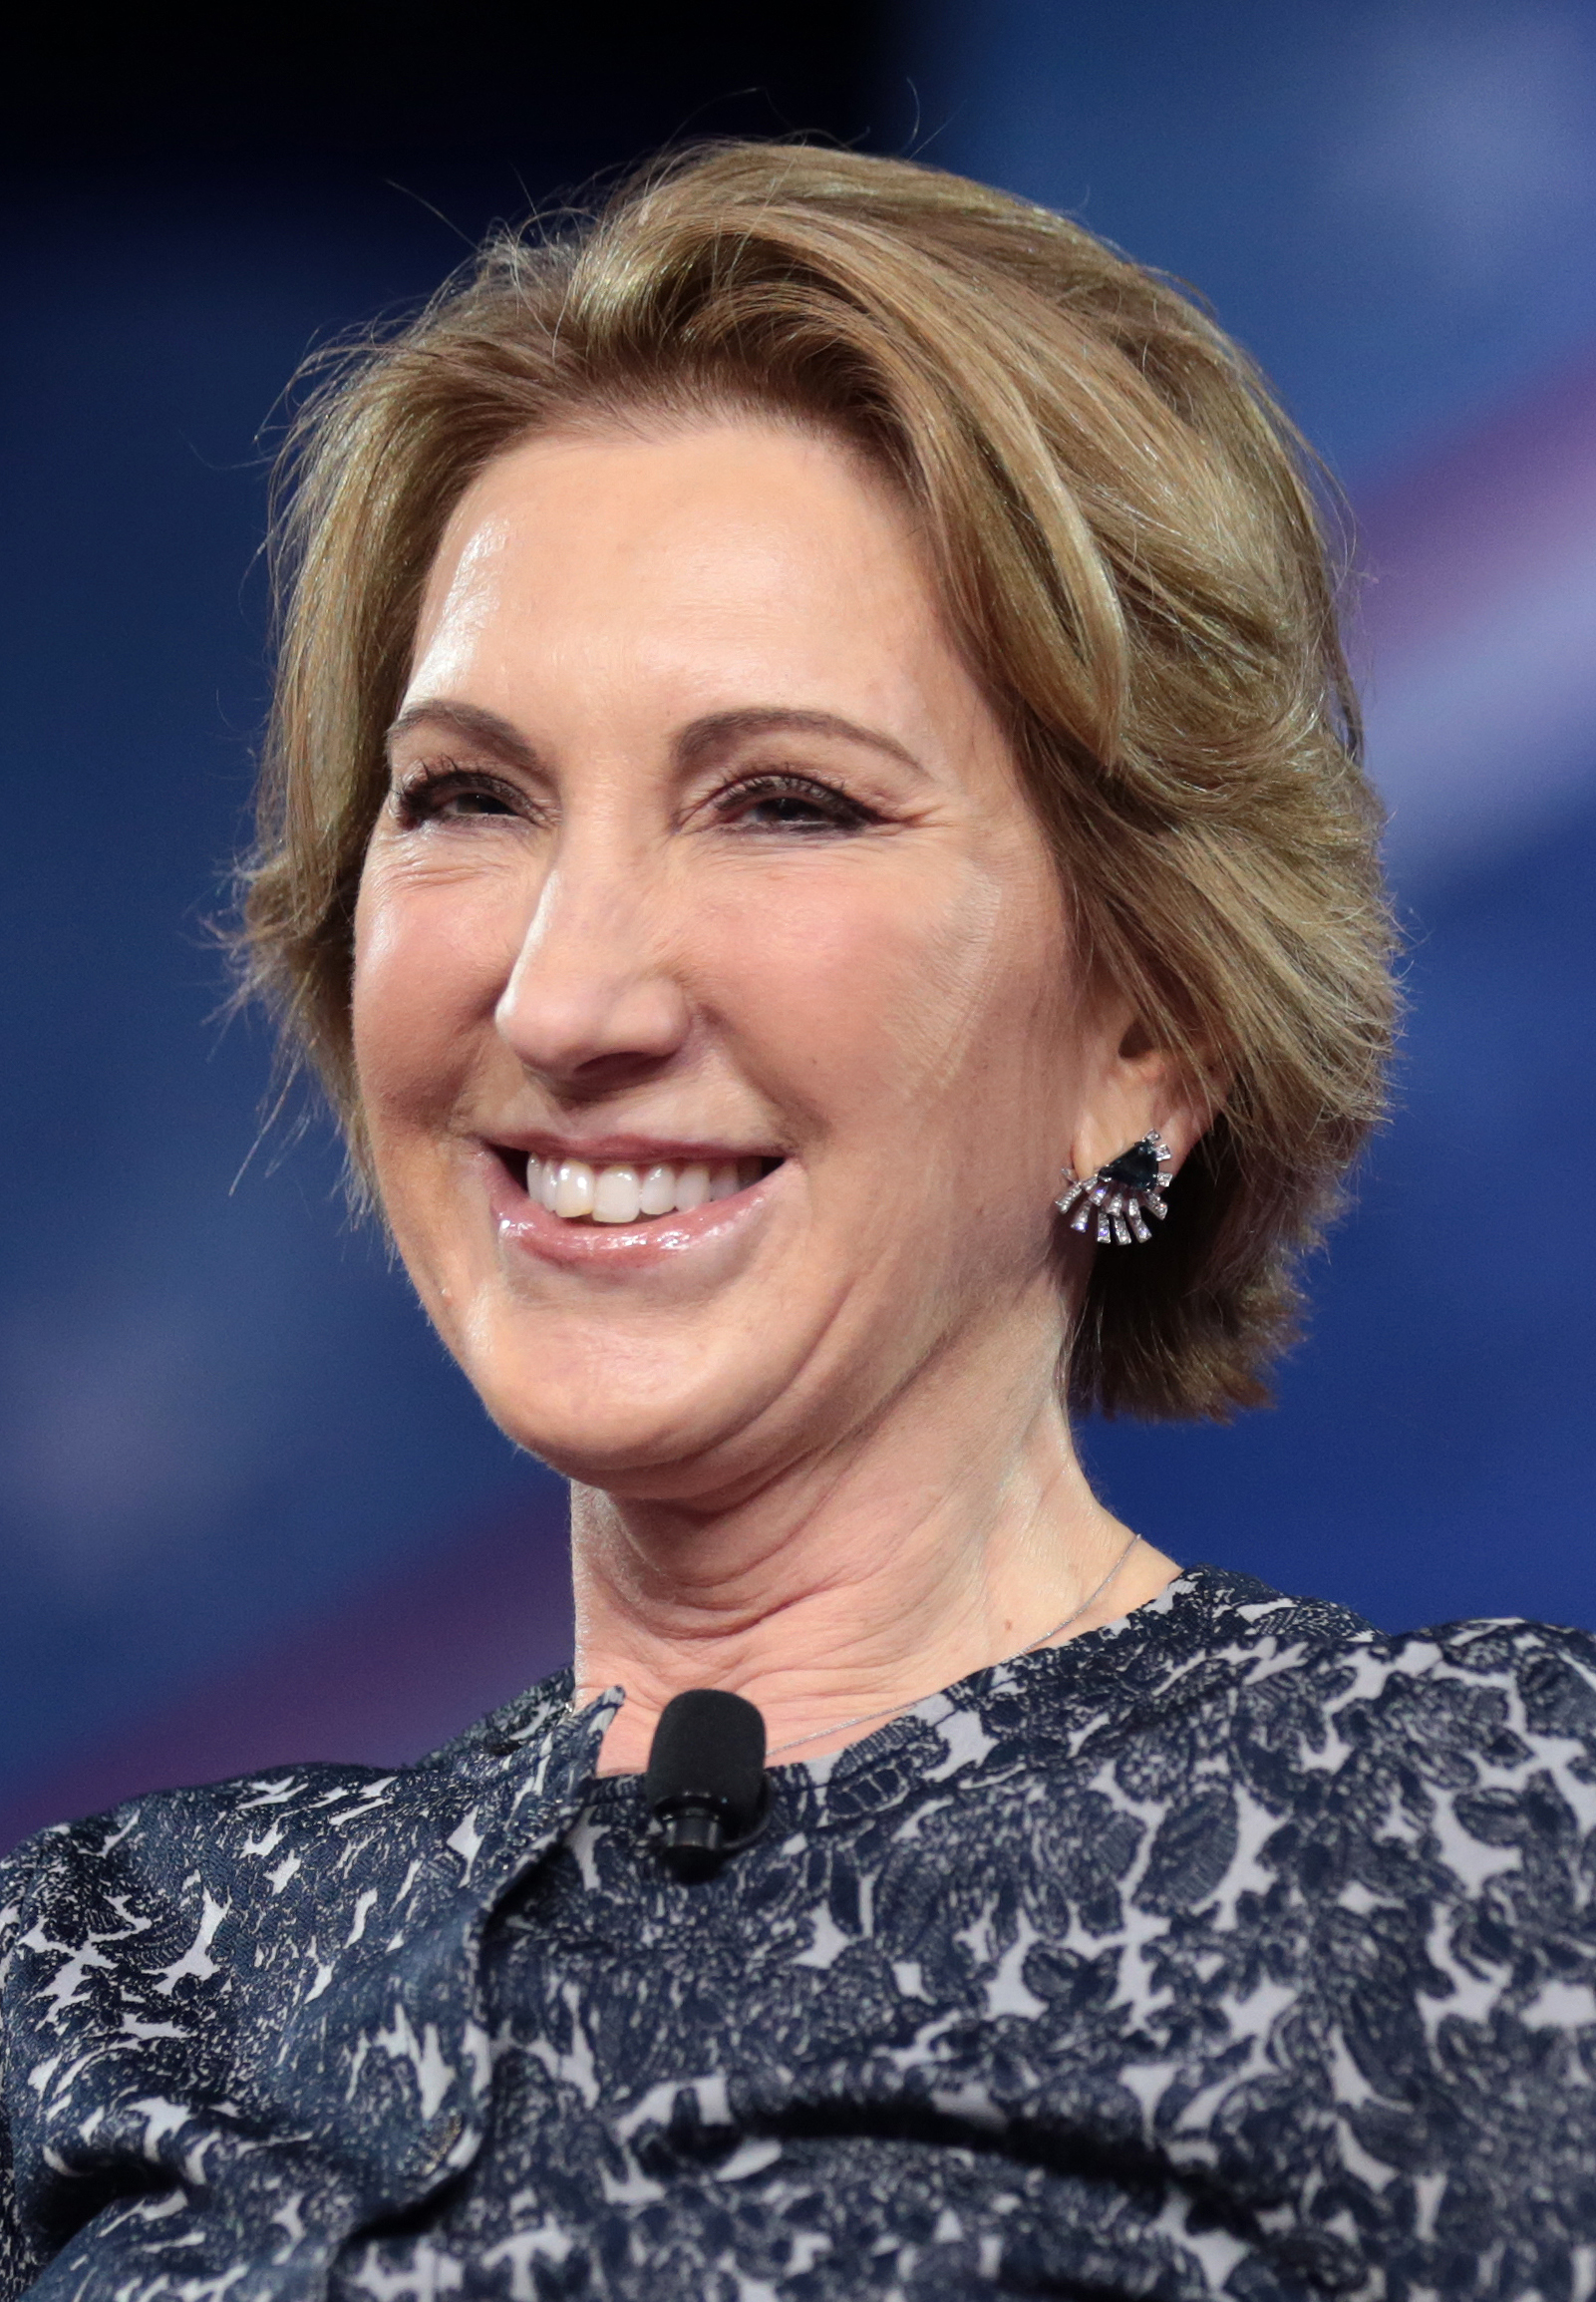 Carly Fiorina Wikipedia